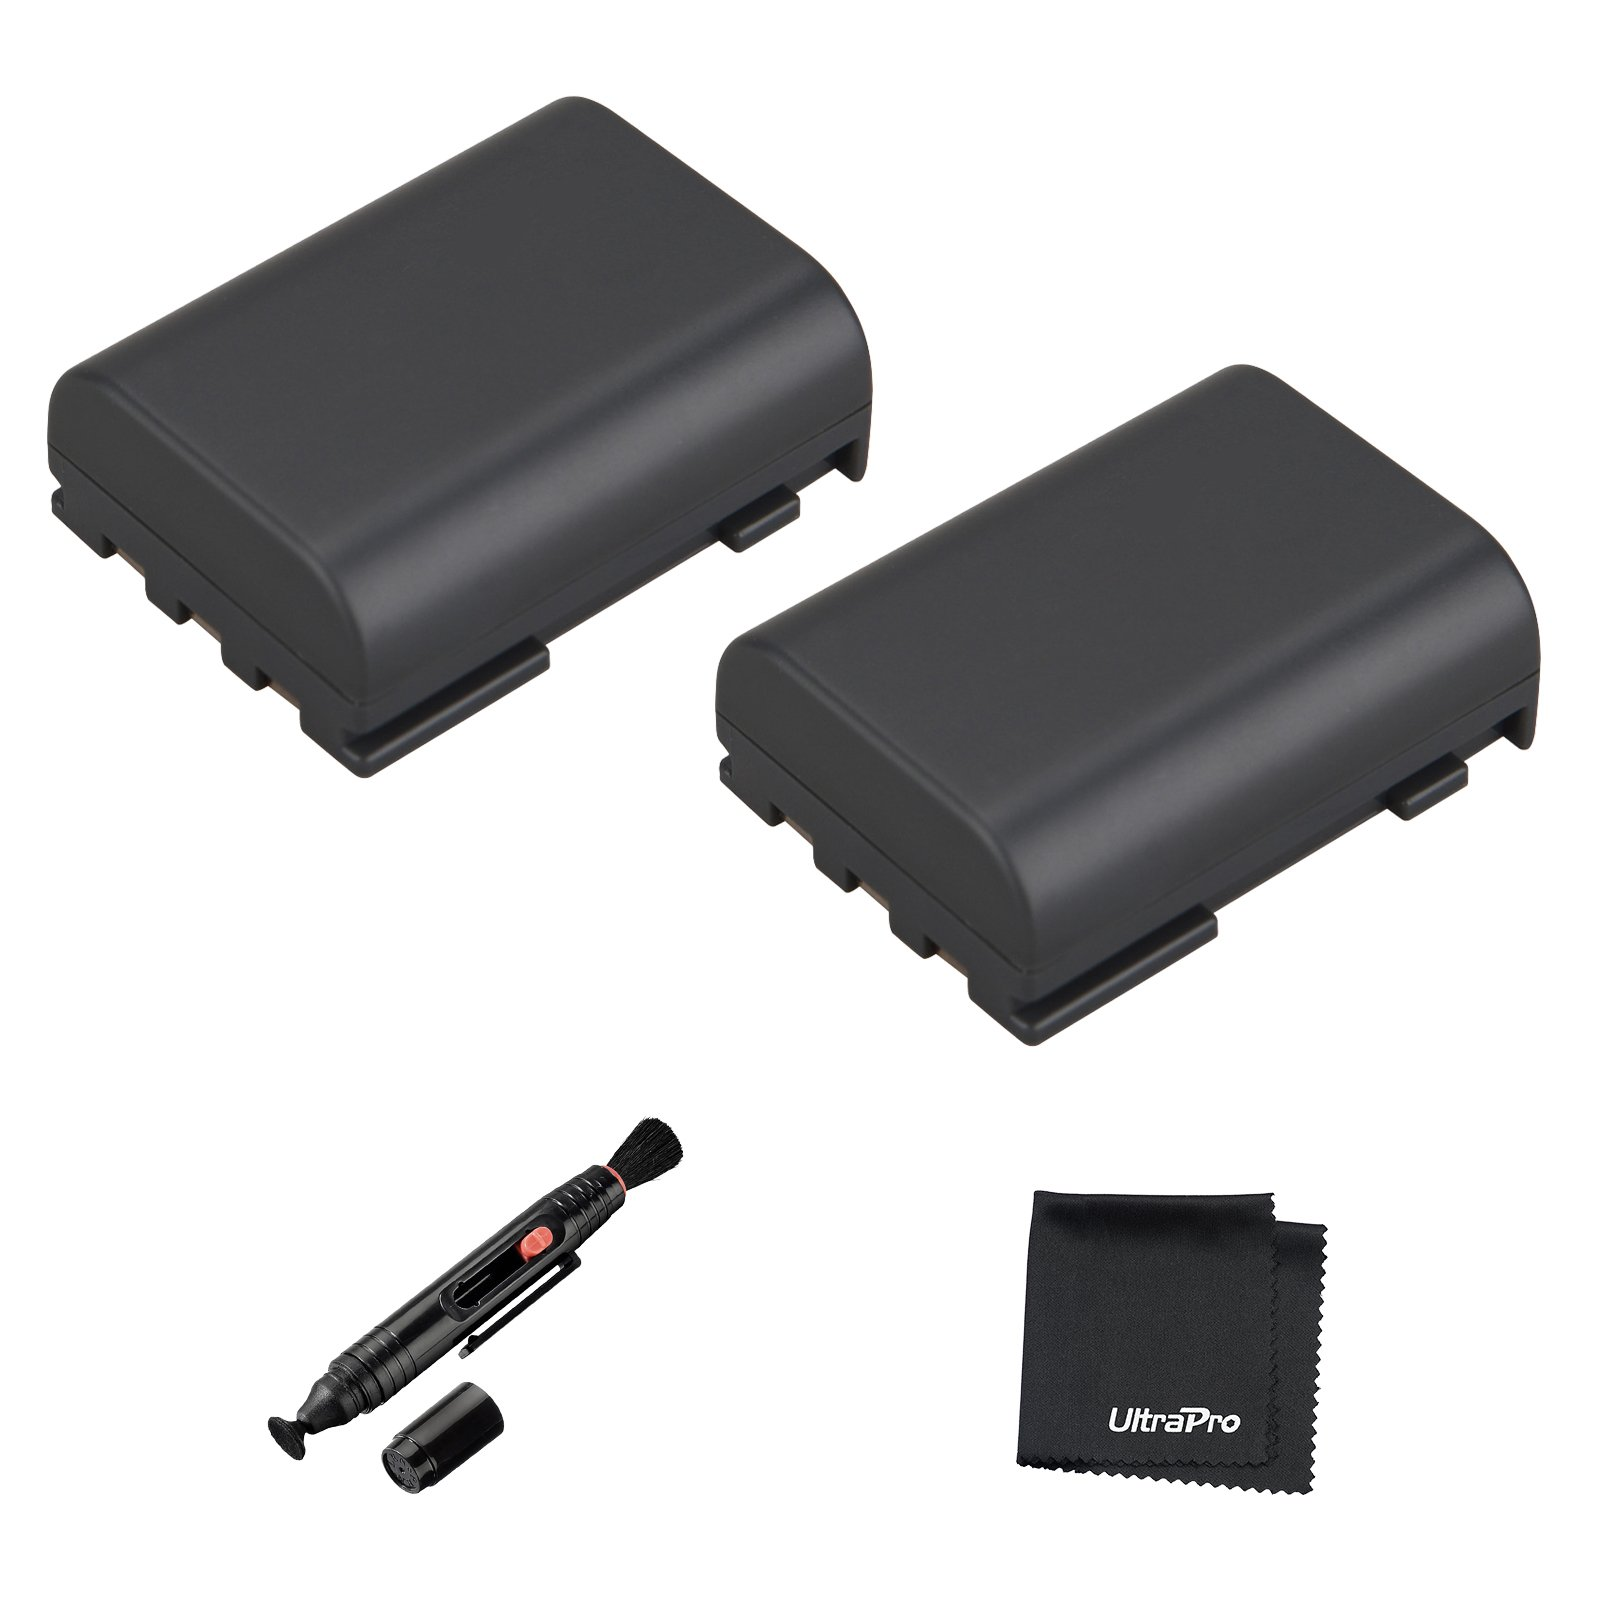 UltraPro 2-Pack NB-2LH High-Capacity Replacement Battery for Canon EOS 350D 400D Rebel XT Digital Rebel Xti - UltraPro BONUS INCLUDED: Deluxe MicroFiber Cleaning Cloth, Lens Cleaning Pen by UltraPro